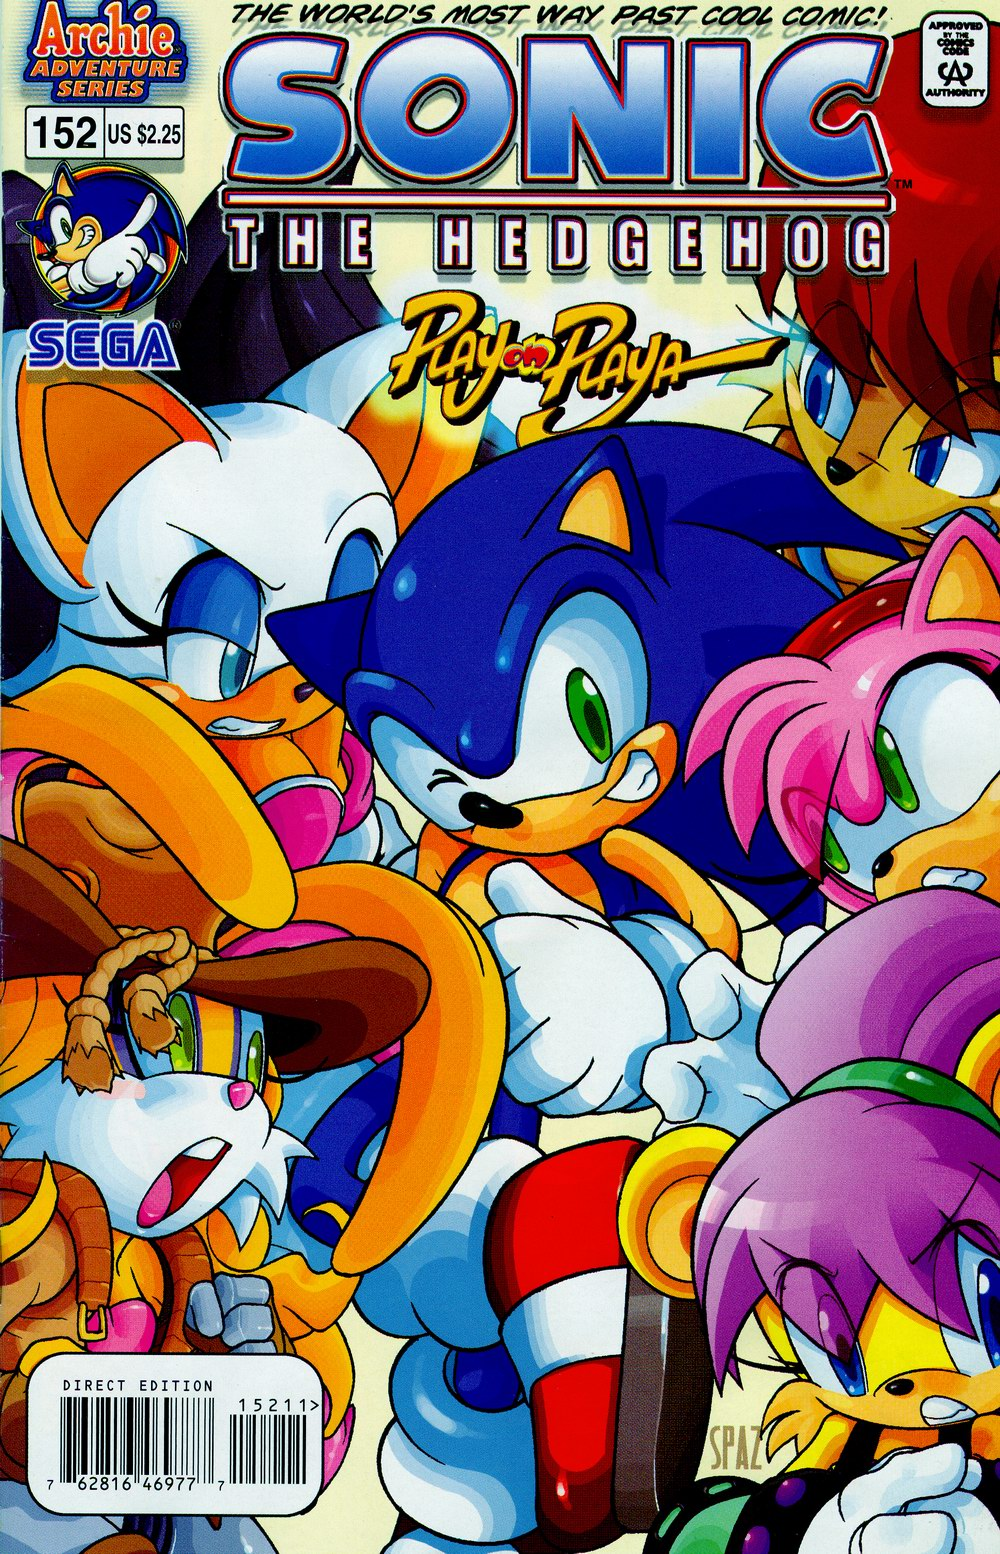 Sonic - Archie Adventure Series October 2005 Comic cover page